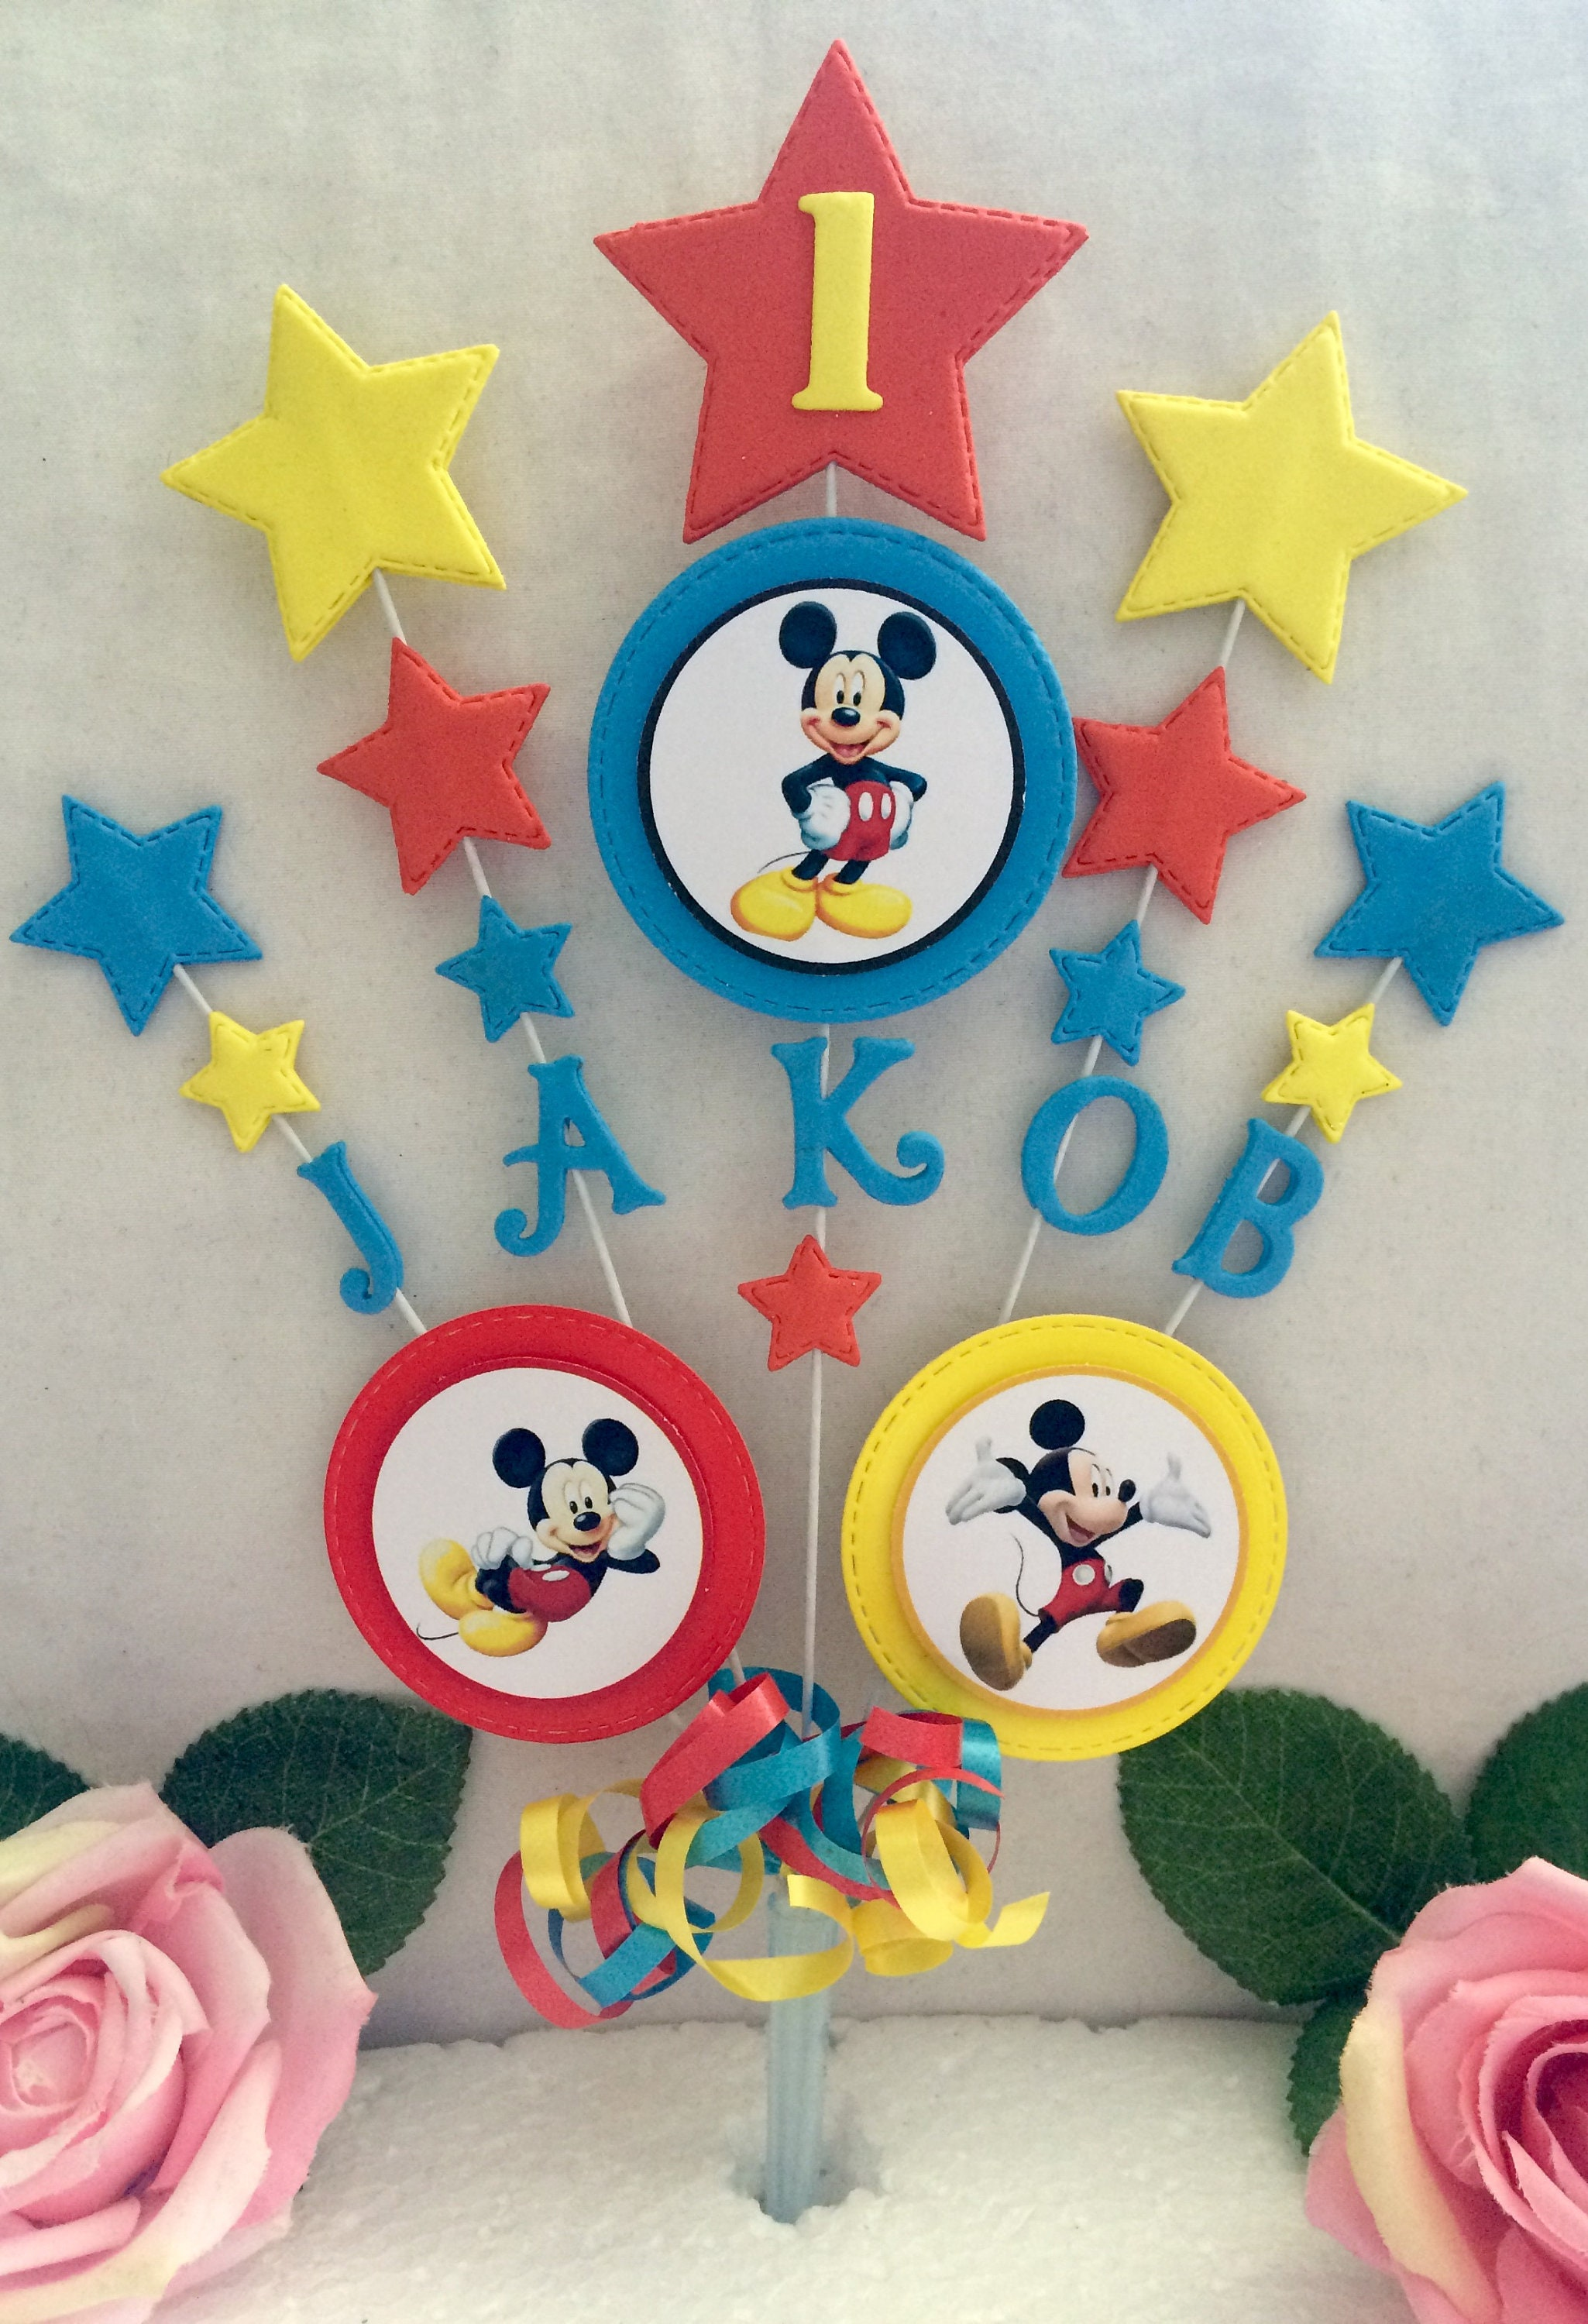 Personalised Mickey Mouse Topper Mickey Mouse Party Decor Etsy